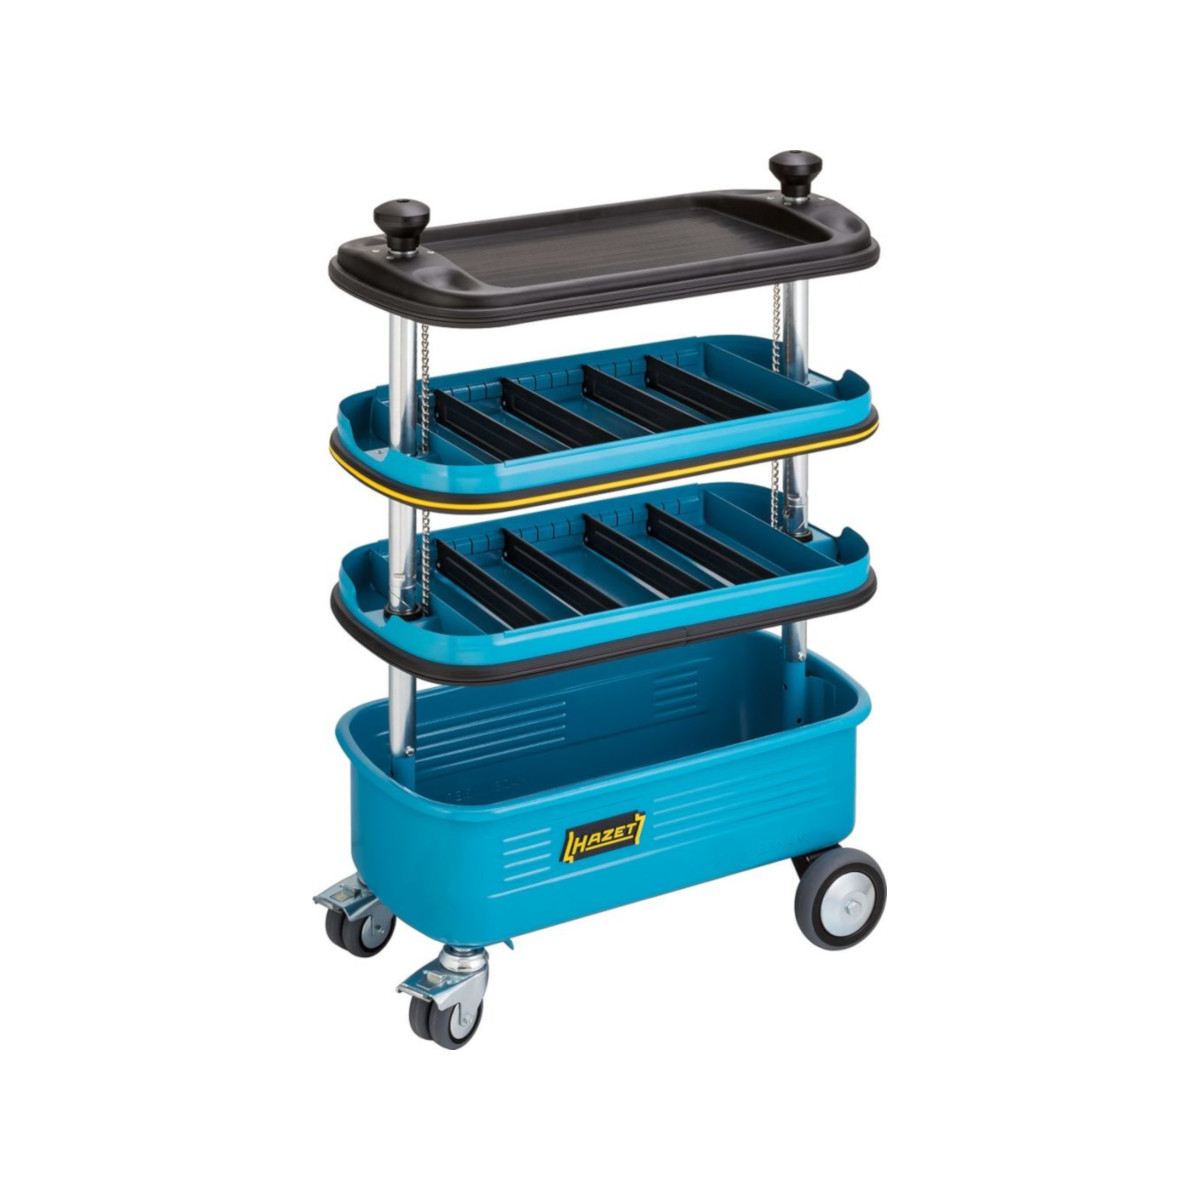 HAZET 166N Tool trolley Assistent®